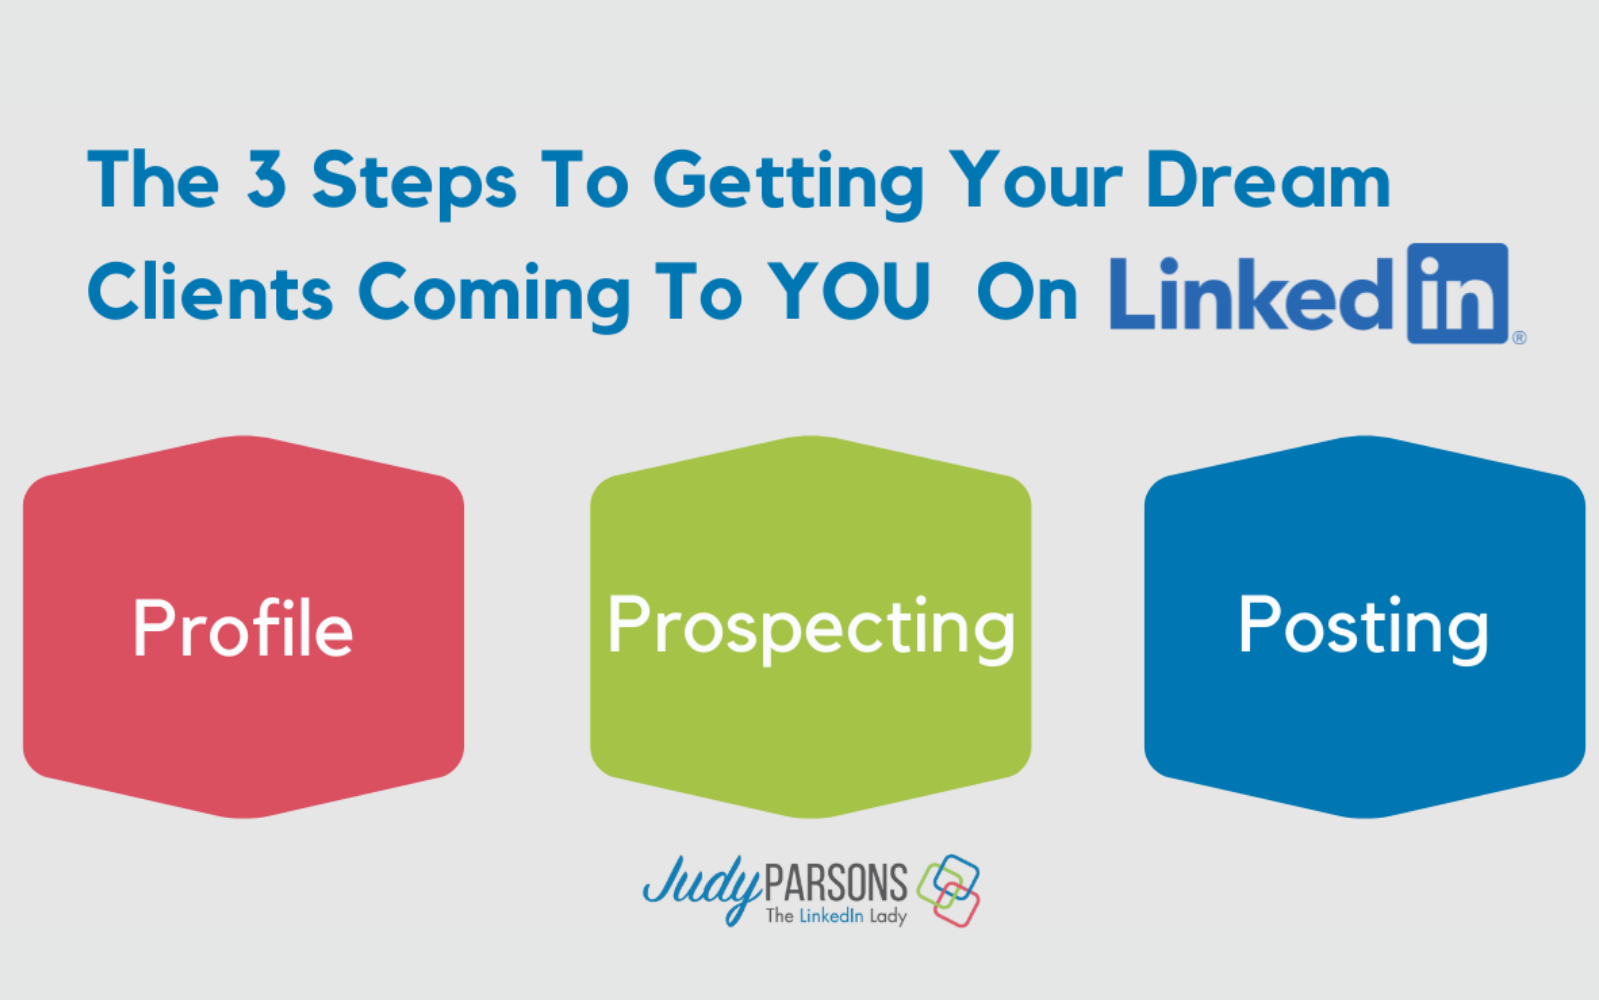 How To Get Your Dream Clients Coming To YOU On LinkedIn